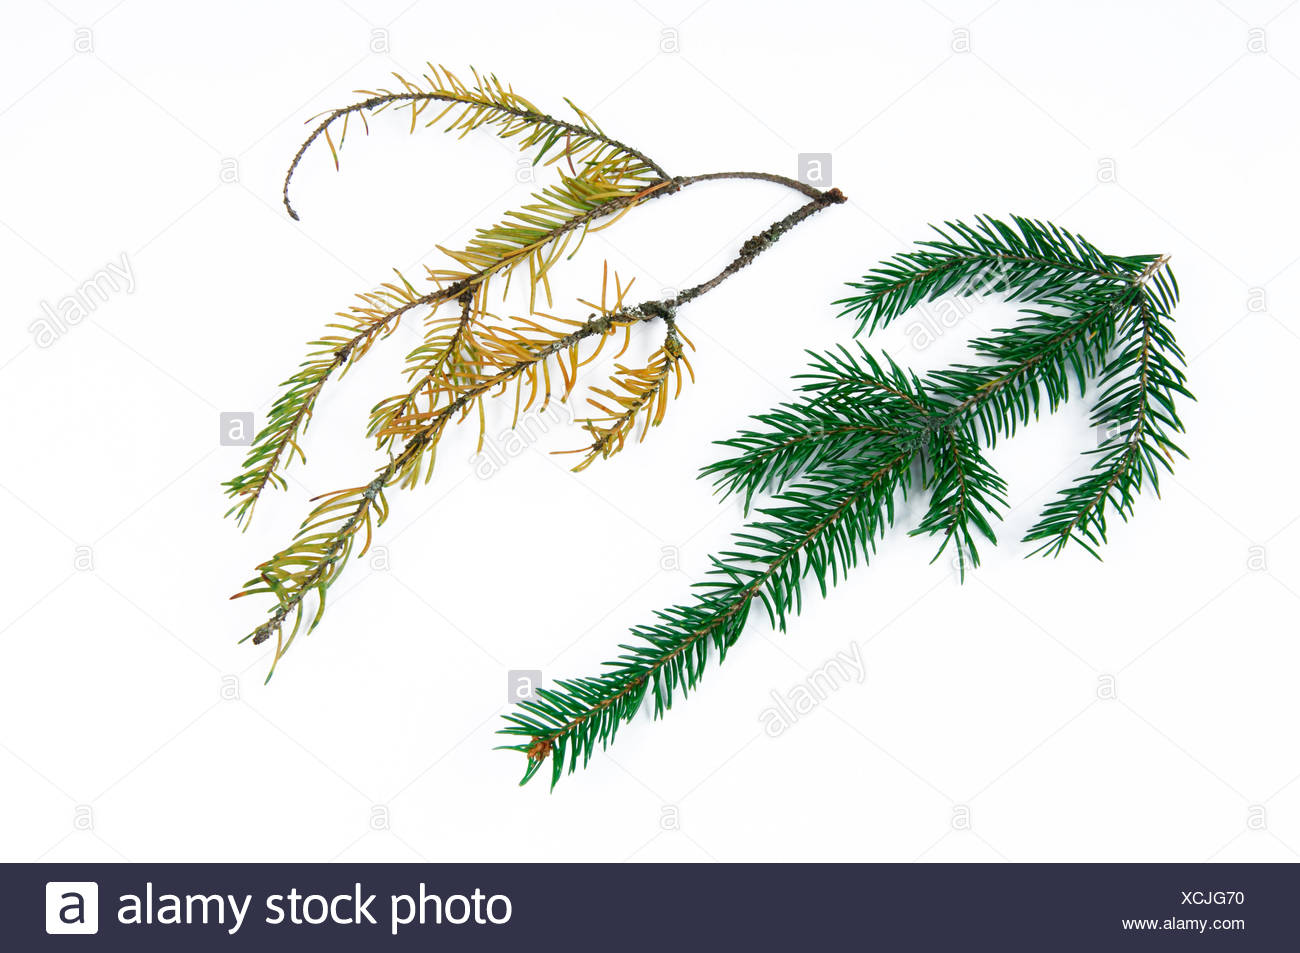 Norway Spruce, Common Spruce (Picea abies). Healthy and seriously damaged twig with fallen off needles and discoloration of needles. Studio picture against a white background. Germany - Stock Image